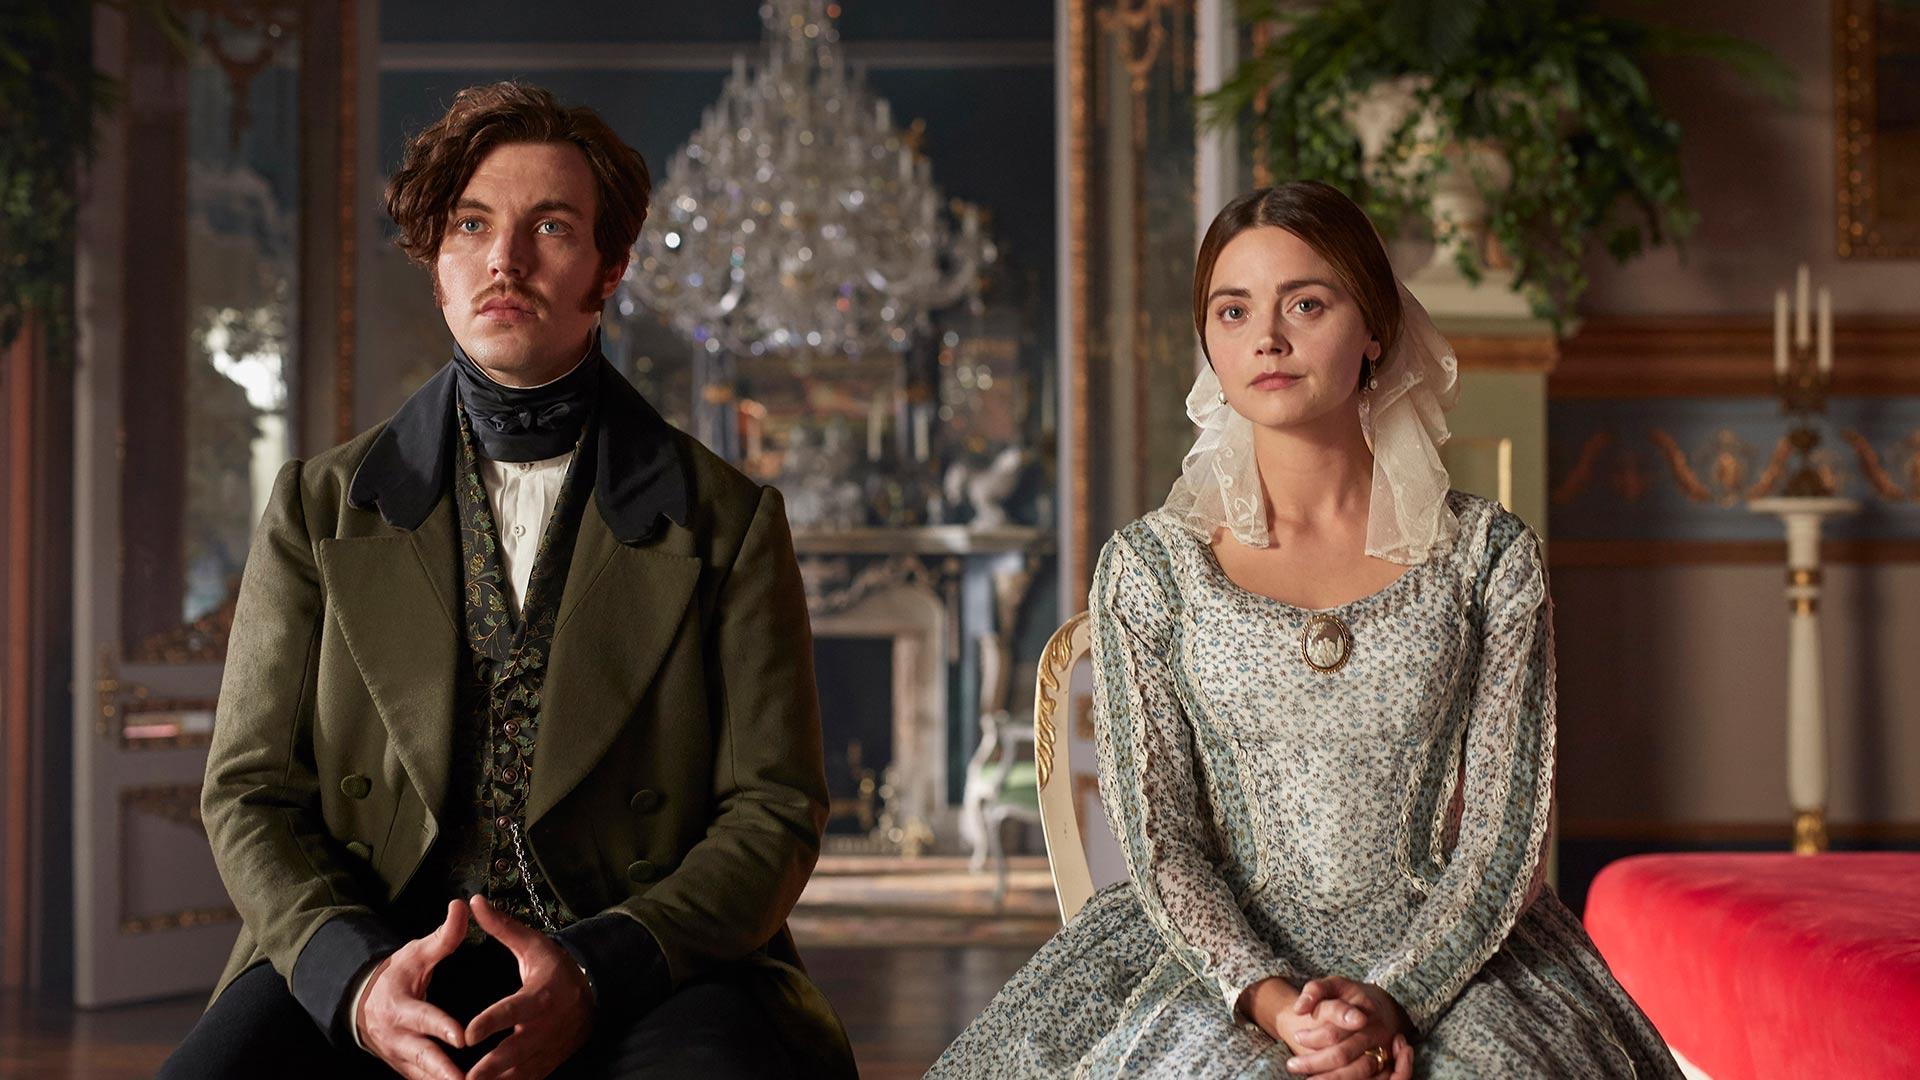 Prince Albert played by Tom Hughes and Queen Victoria played by Jenna Coleman